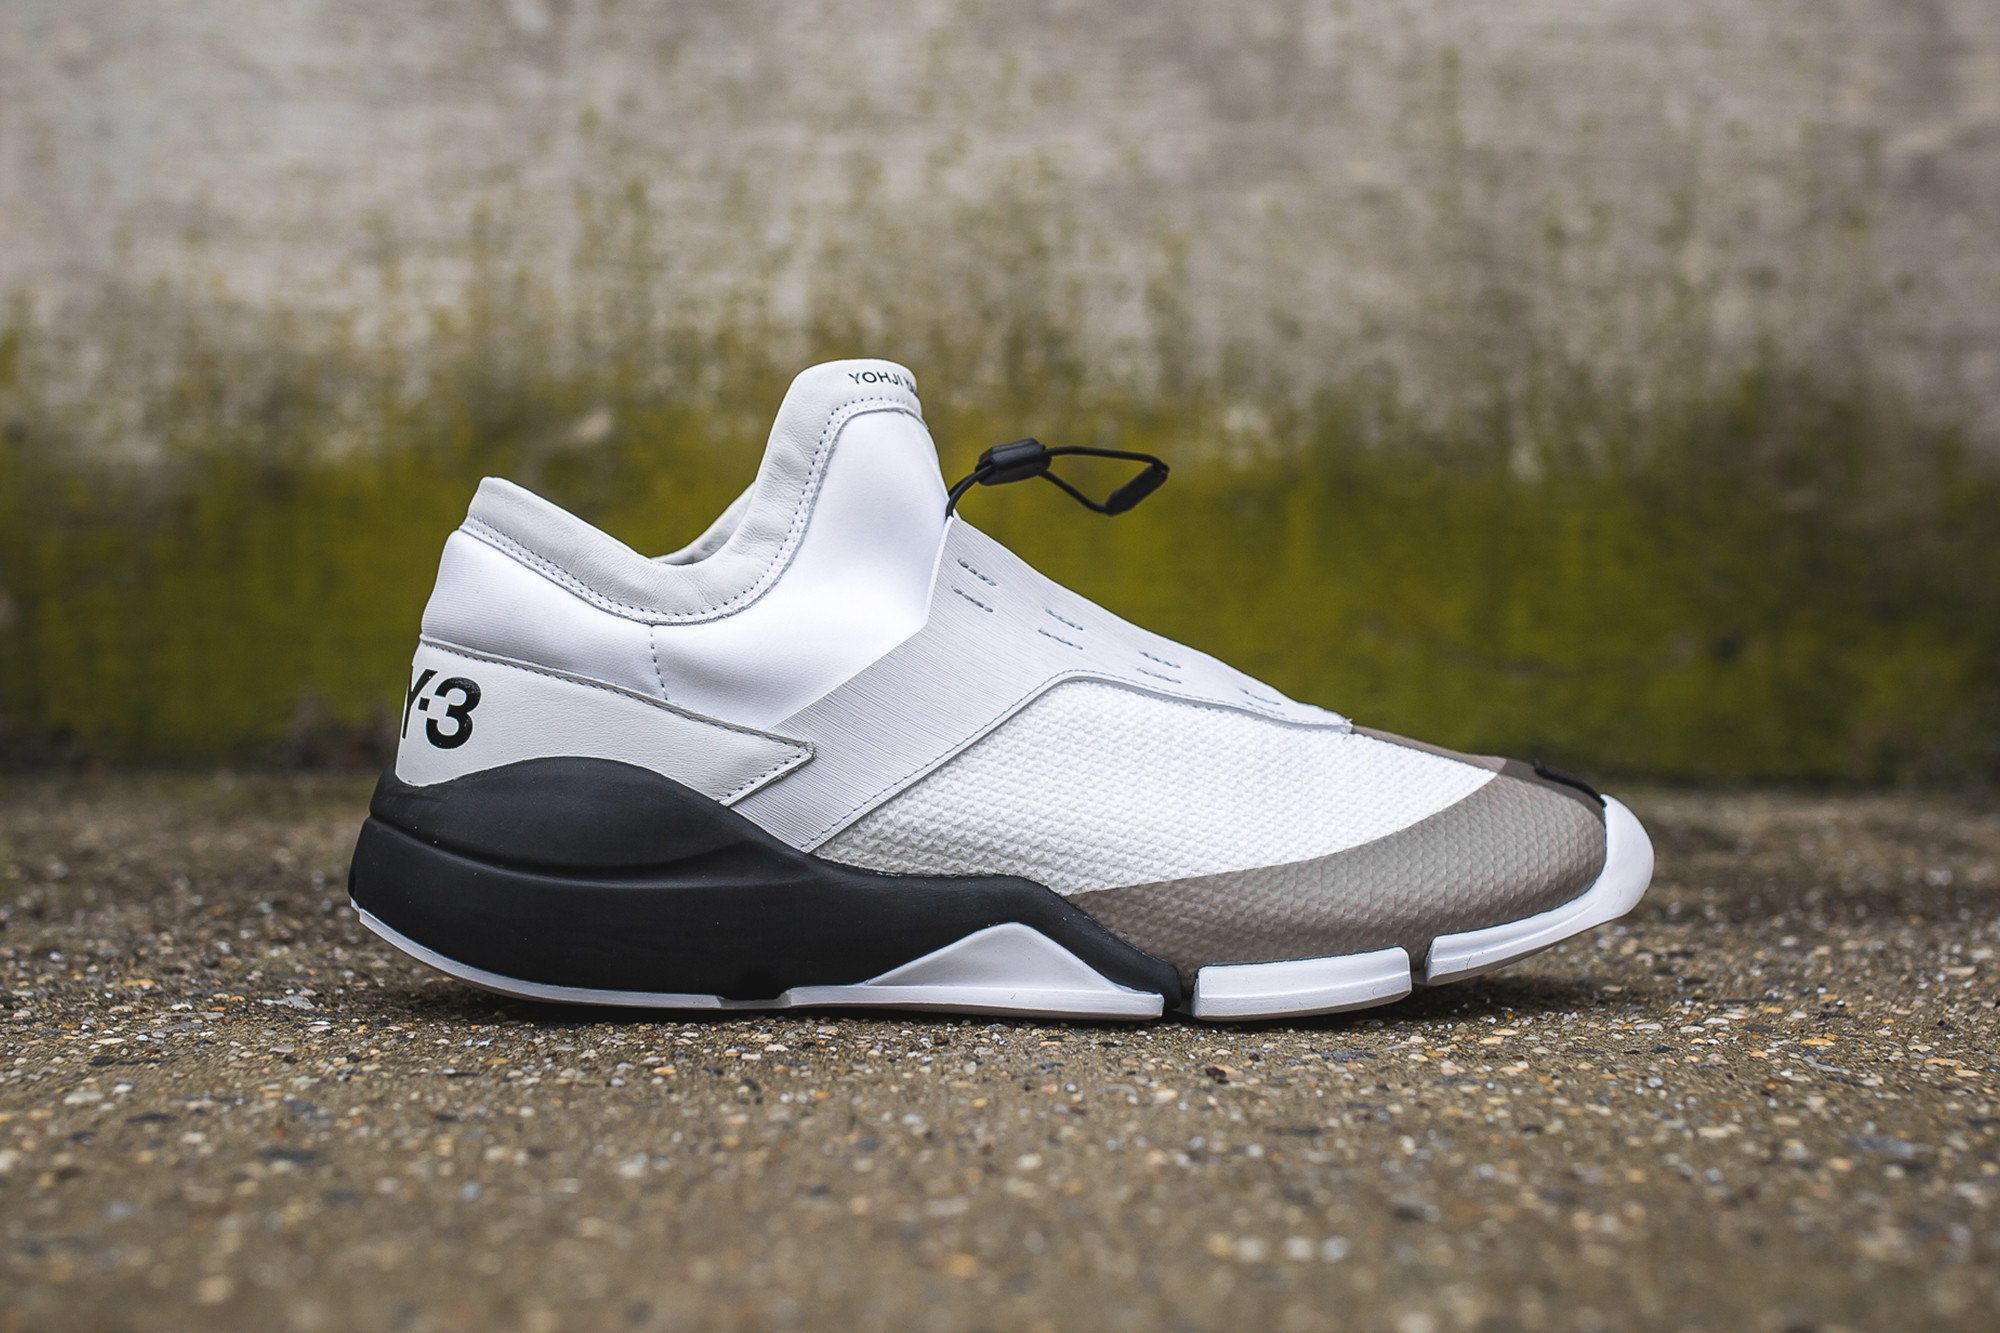 1_y-3_future_low_s82132_side_2048x2048